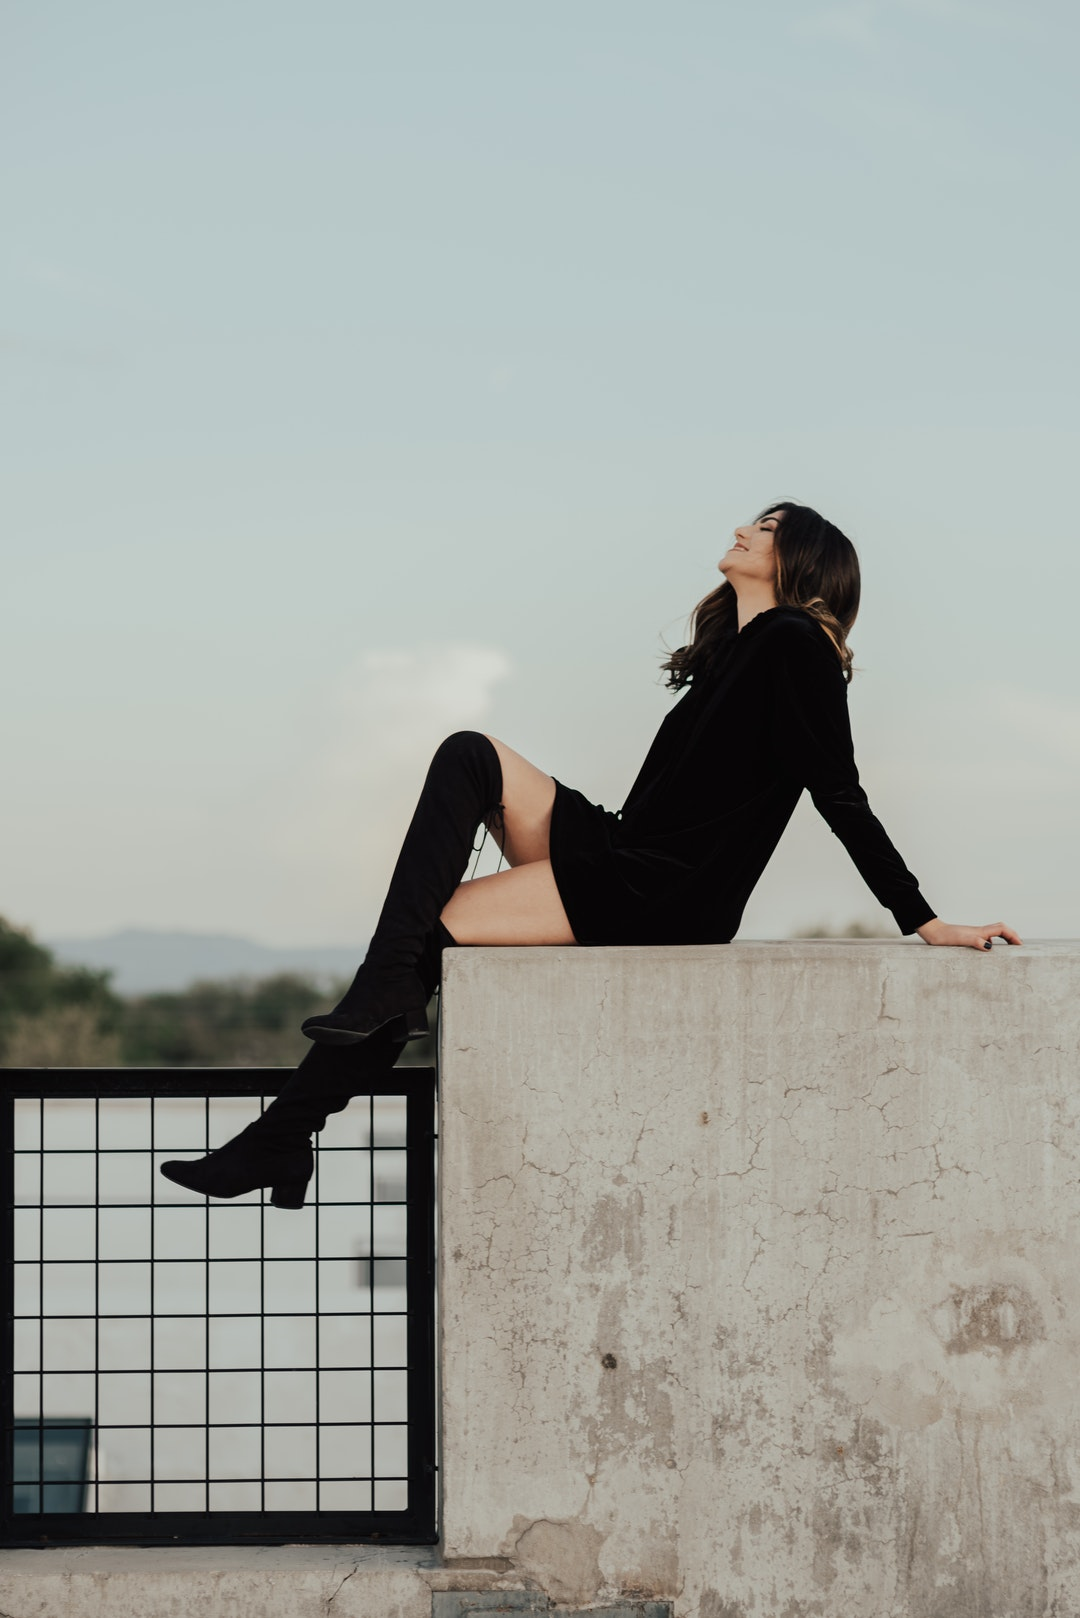 An attractive woman in a black dress with black knee high socks and high heel footwear sits posed on a cement wall in Salt Lake City